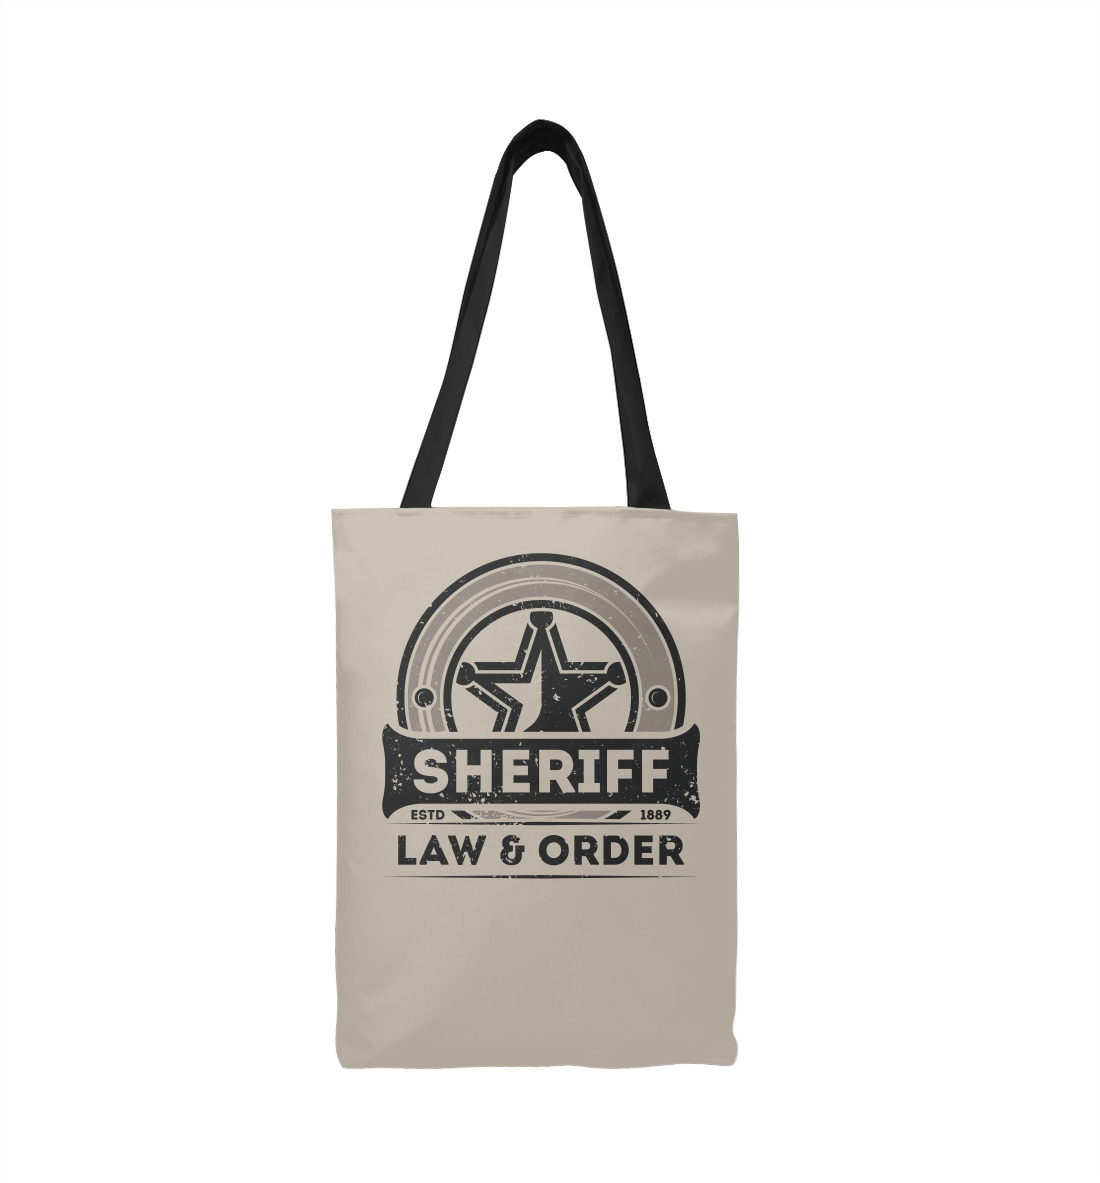 Law and Order company law